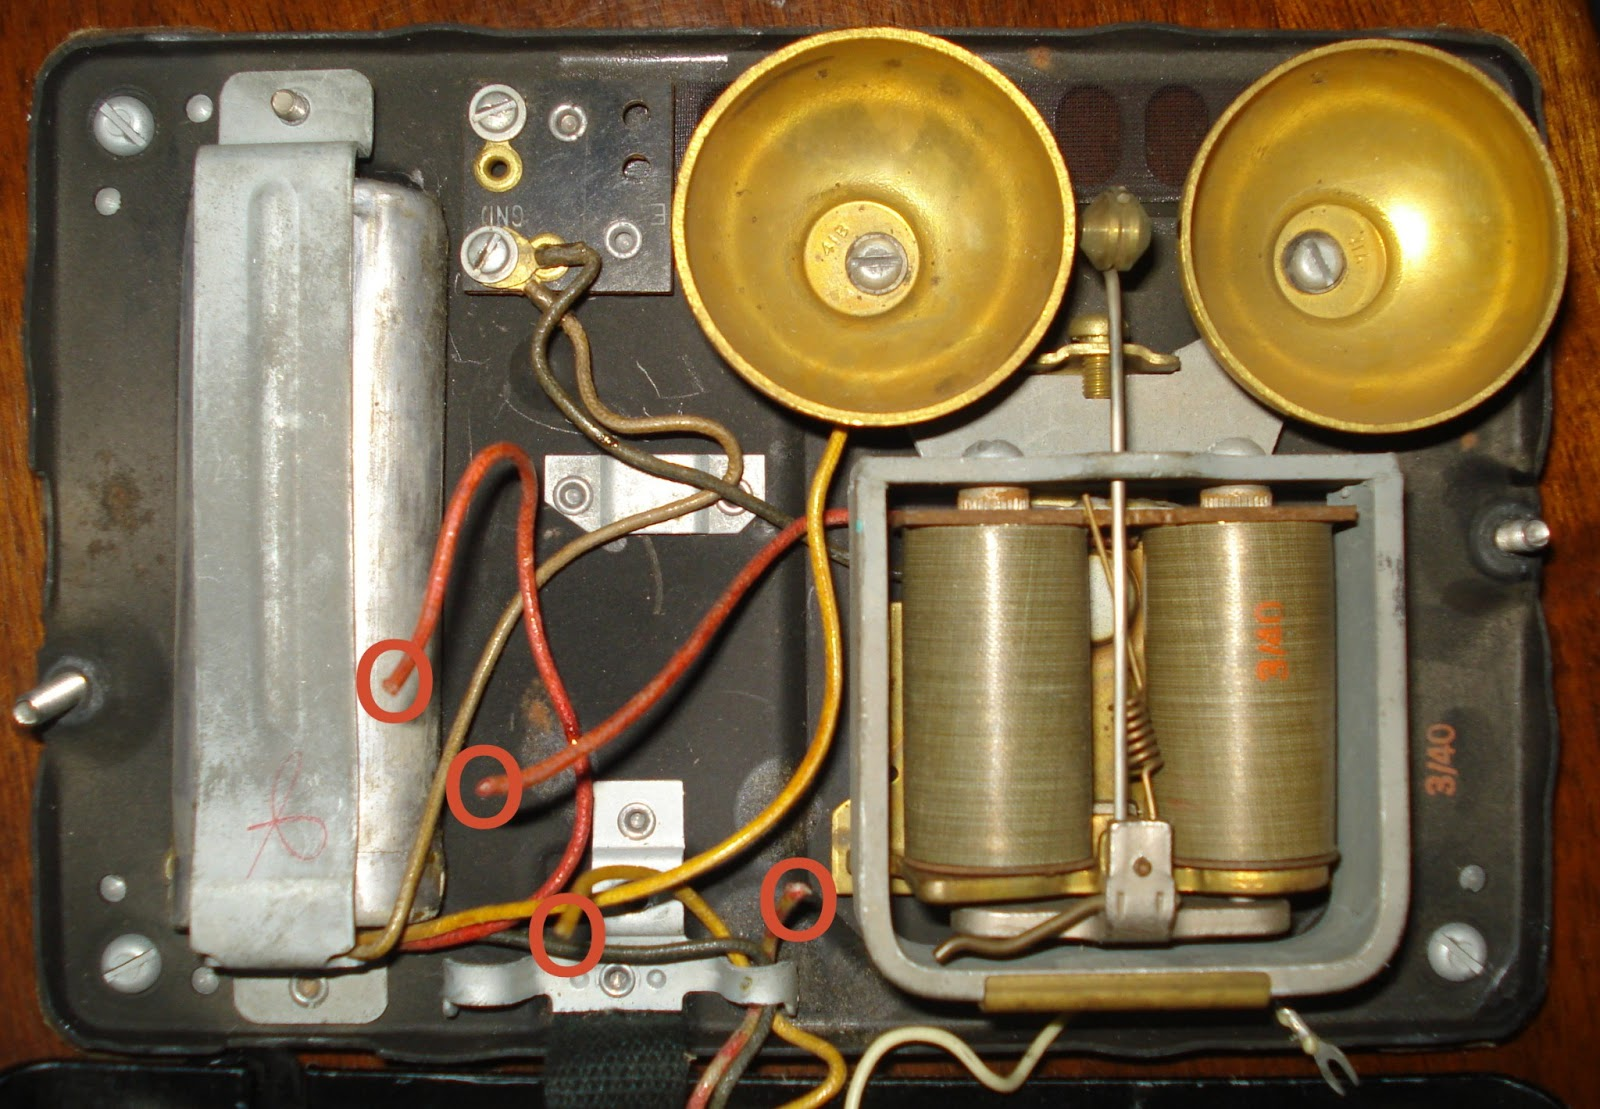 hight resolution of can you help me to rewire this very old telephone telephones old telephone wiring colors